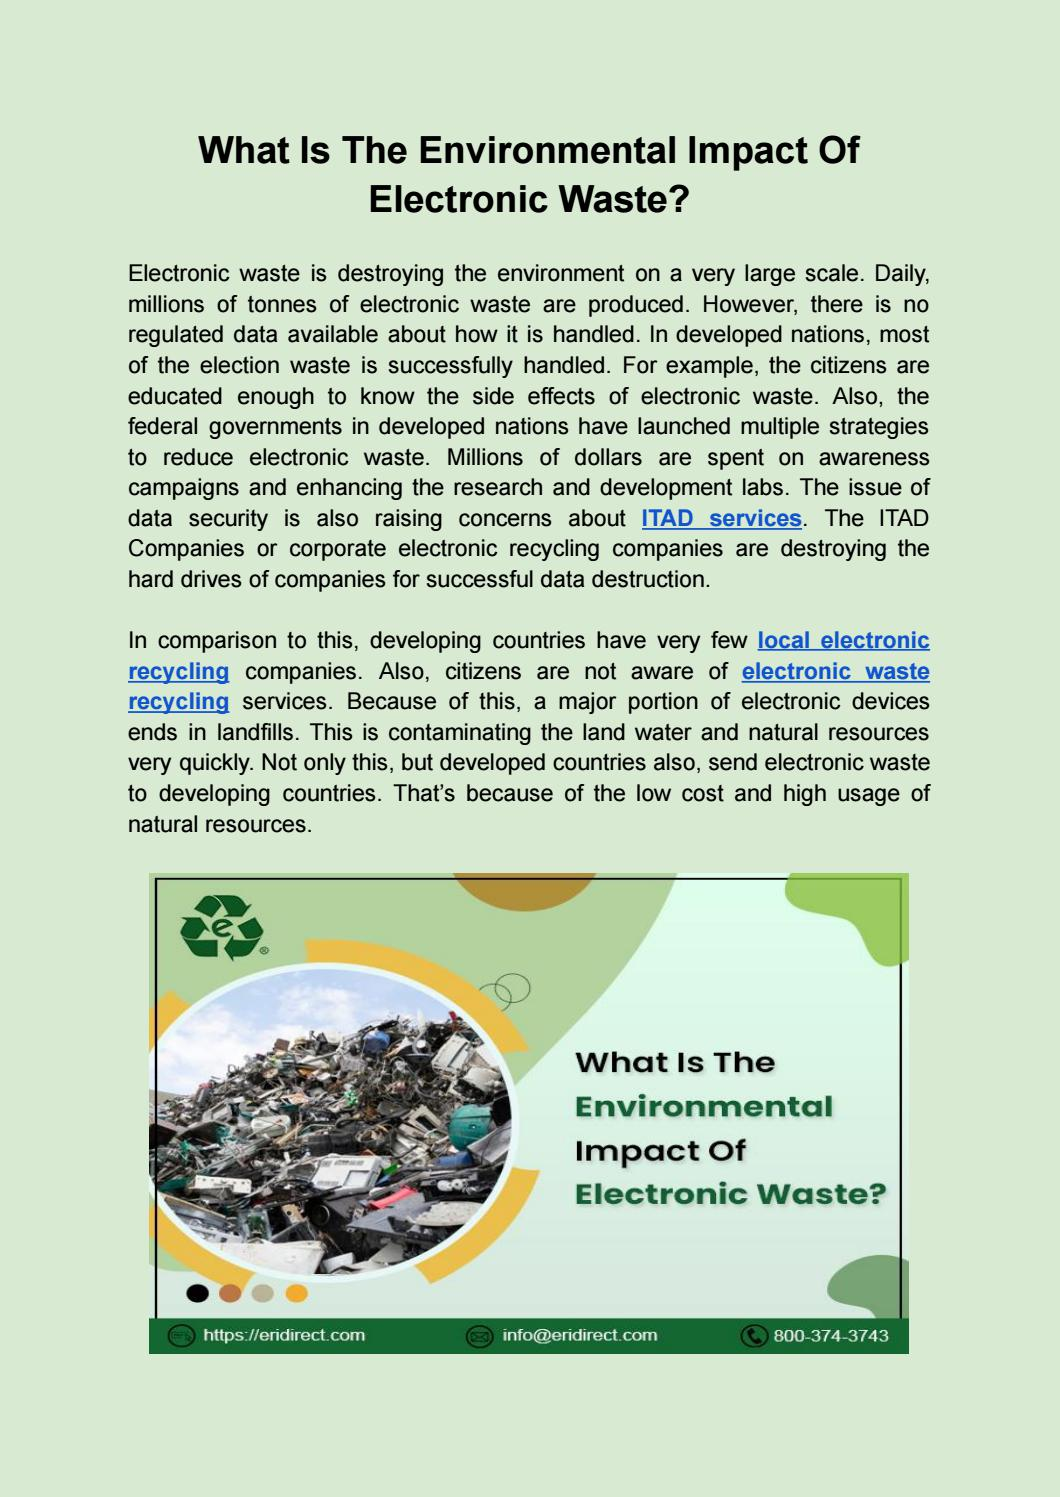 What Is The Environmental Impact Of Electronic Waste?